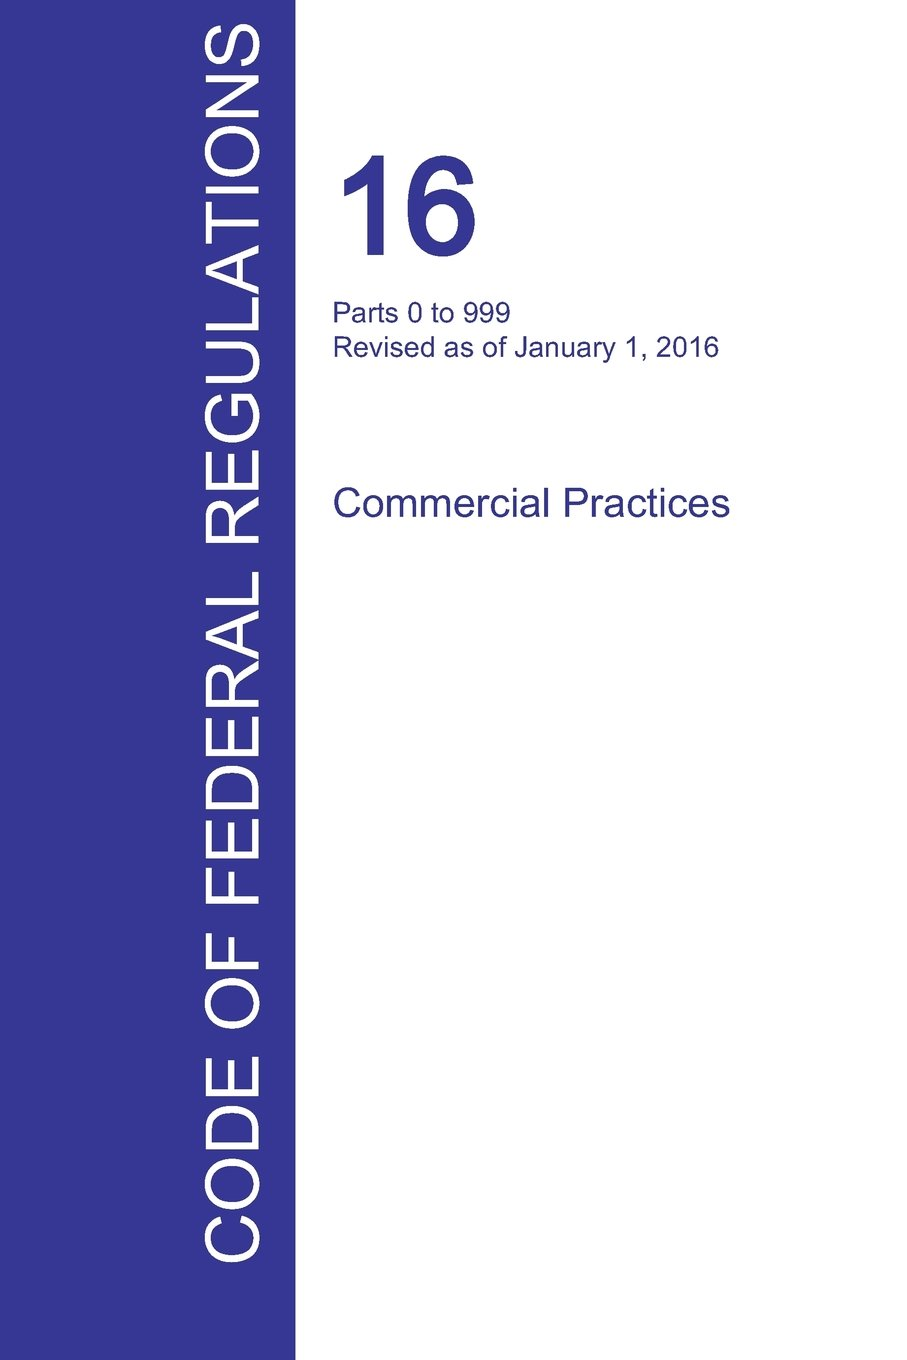 Download CFR 16, Parts 0 to 999, Commercial Practices, January 01, 2016 (Volume 1 of 2) PDF